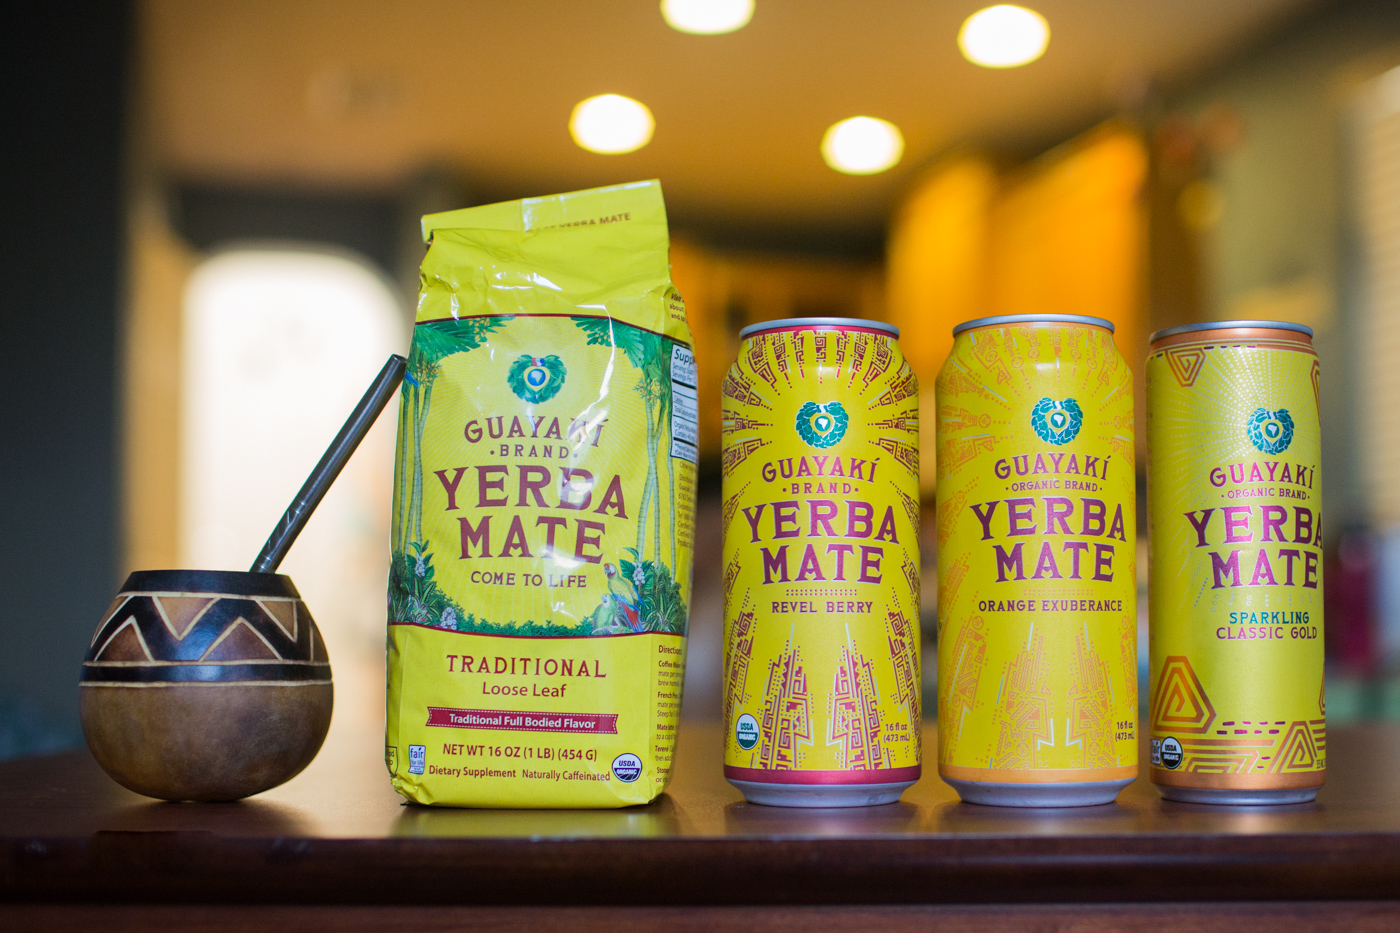 guayaki-yerba-mate-cans-loose-leaf-tea-mmm